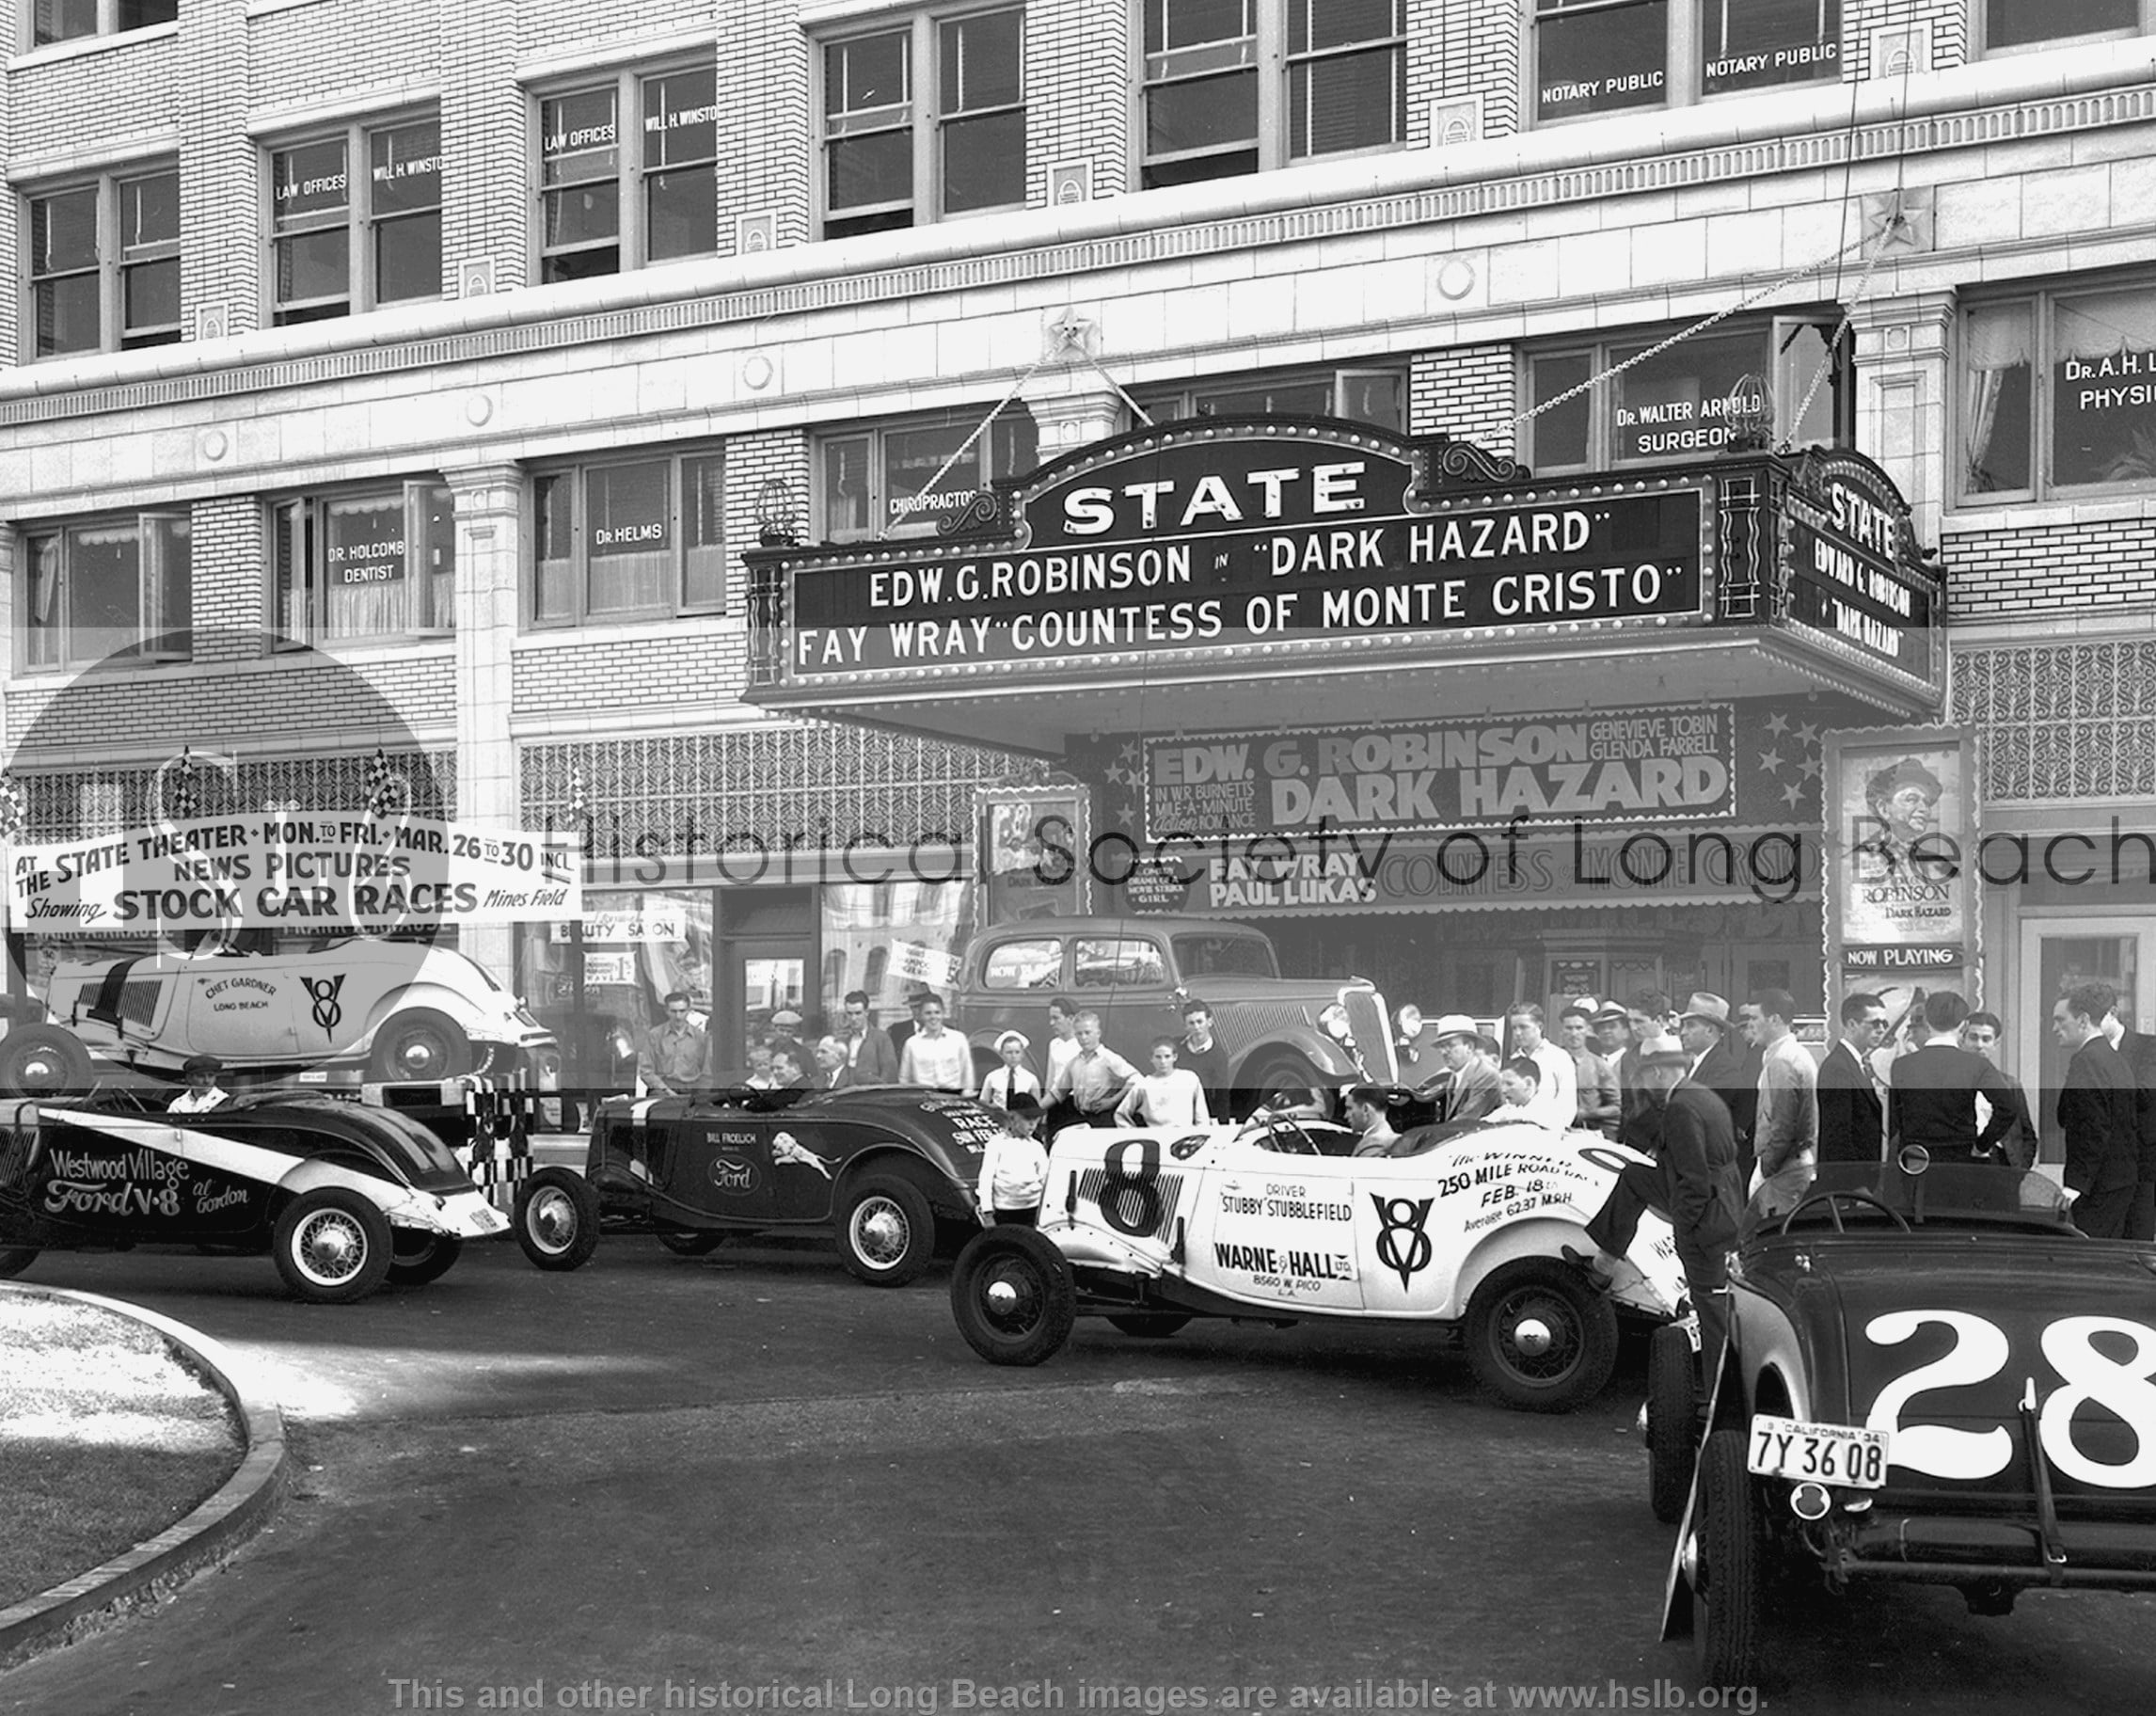 Race Cars at State Theatre, 1934